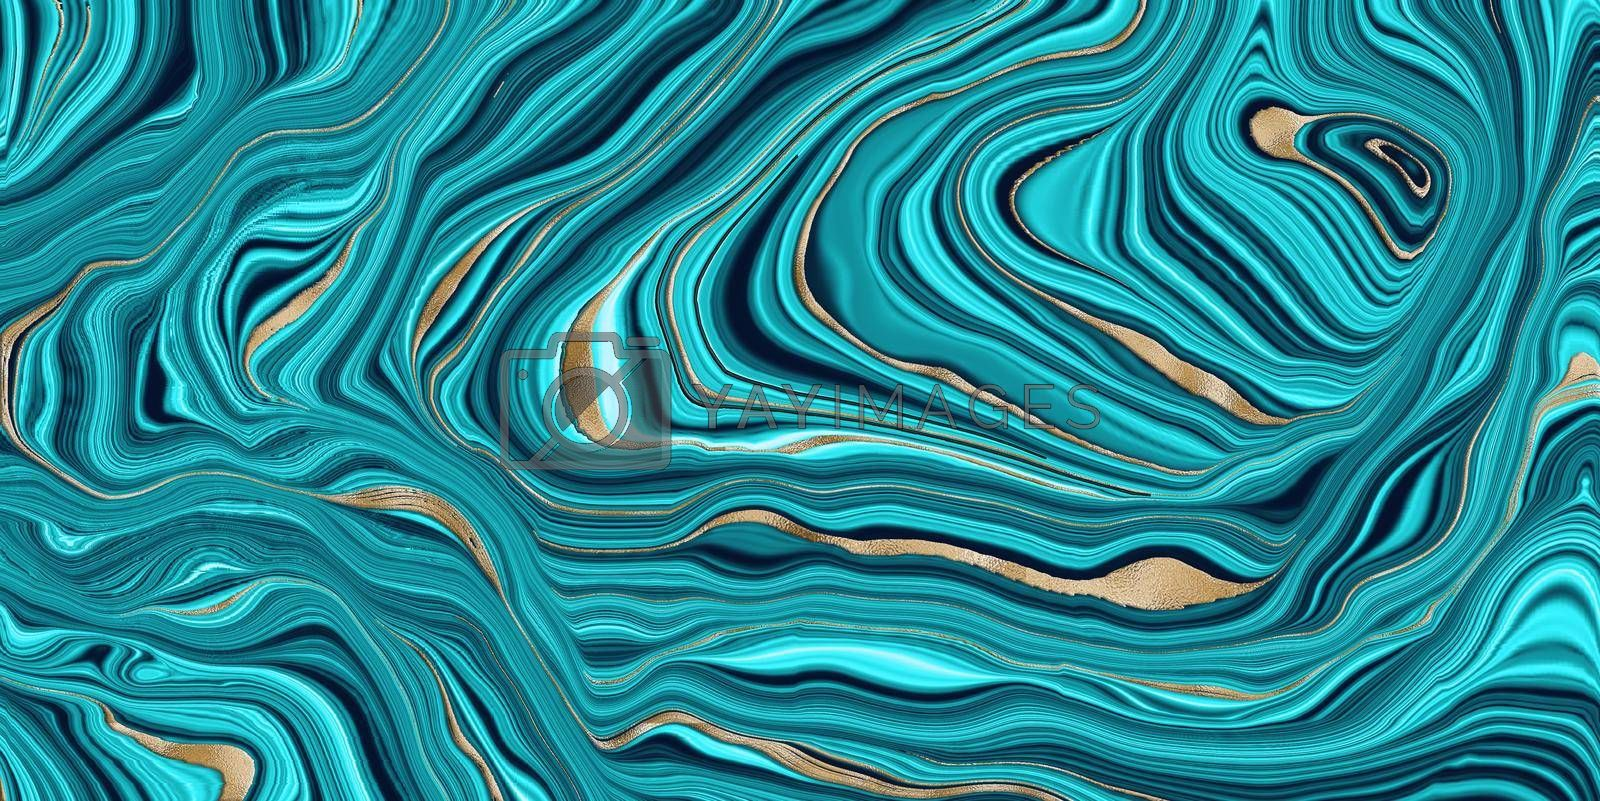 Agate Background in blue with golden vein. Agate stone texture with gold. Blue turquoise fluid marbling effect with golden glitter texture. Illustration